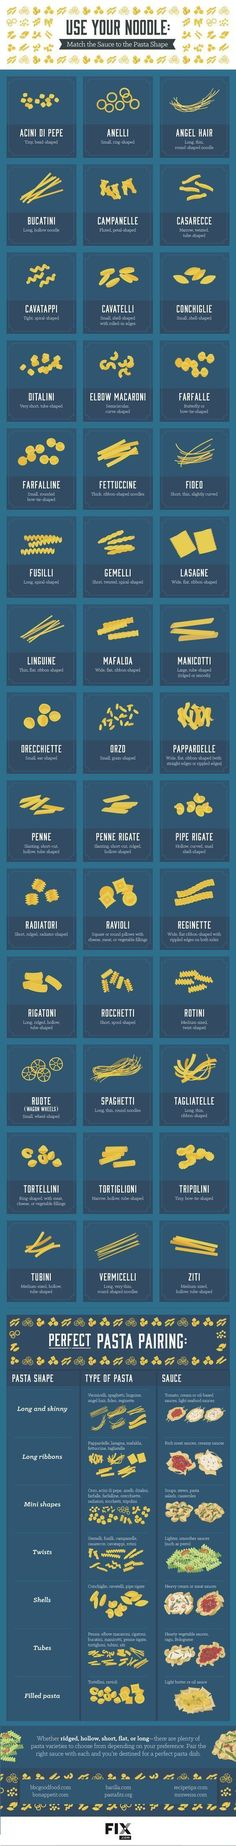 Know Your Noodle: Match the Sauce to the Noodle Shape | Cooking Tips | Cooking Guides #italianinfographic #learnitalian